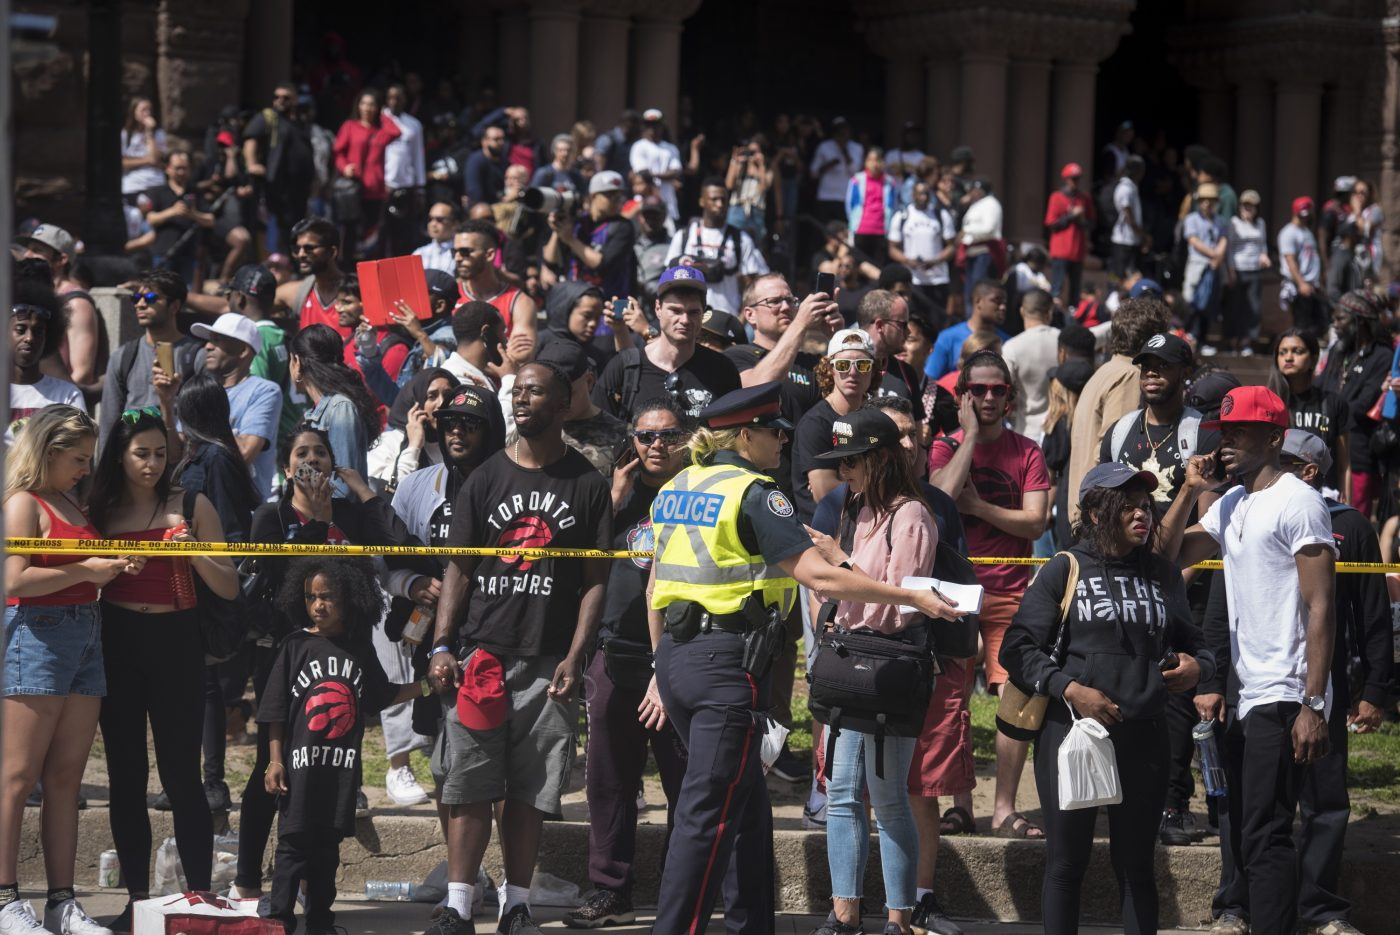 Police: Four shot, three arrested during Raptors rally in